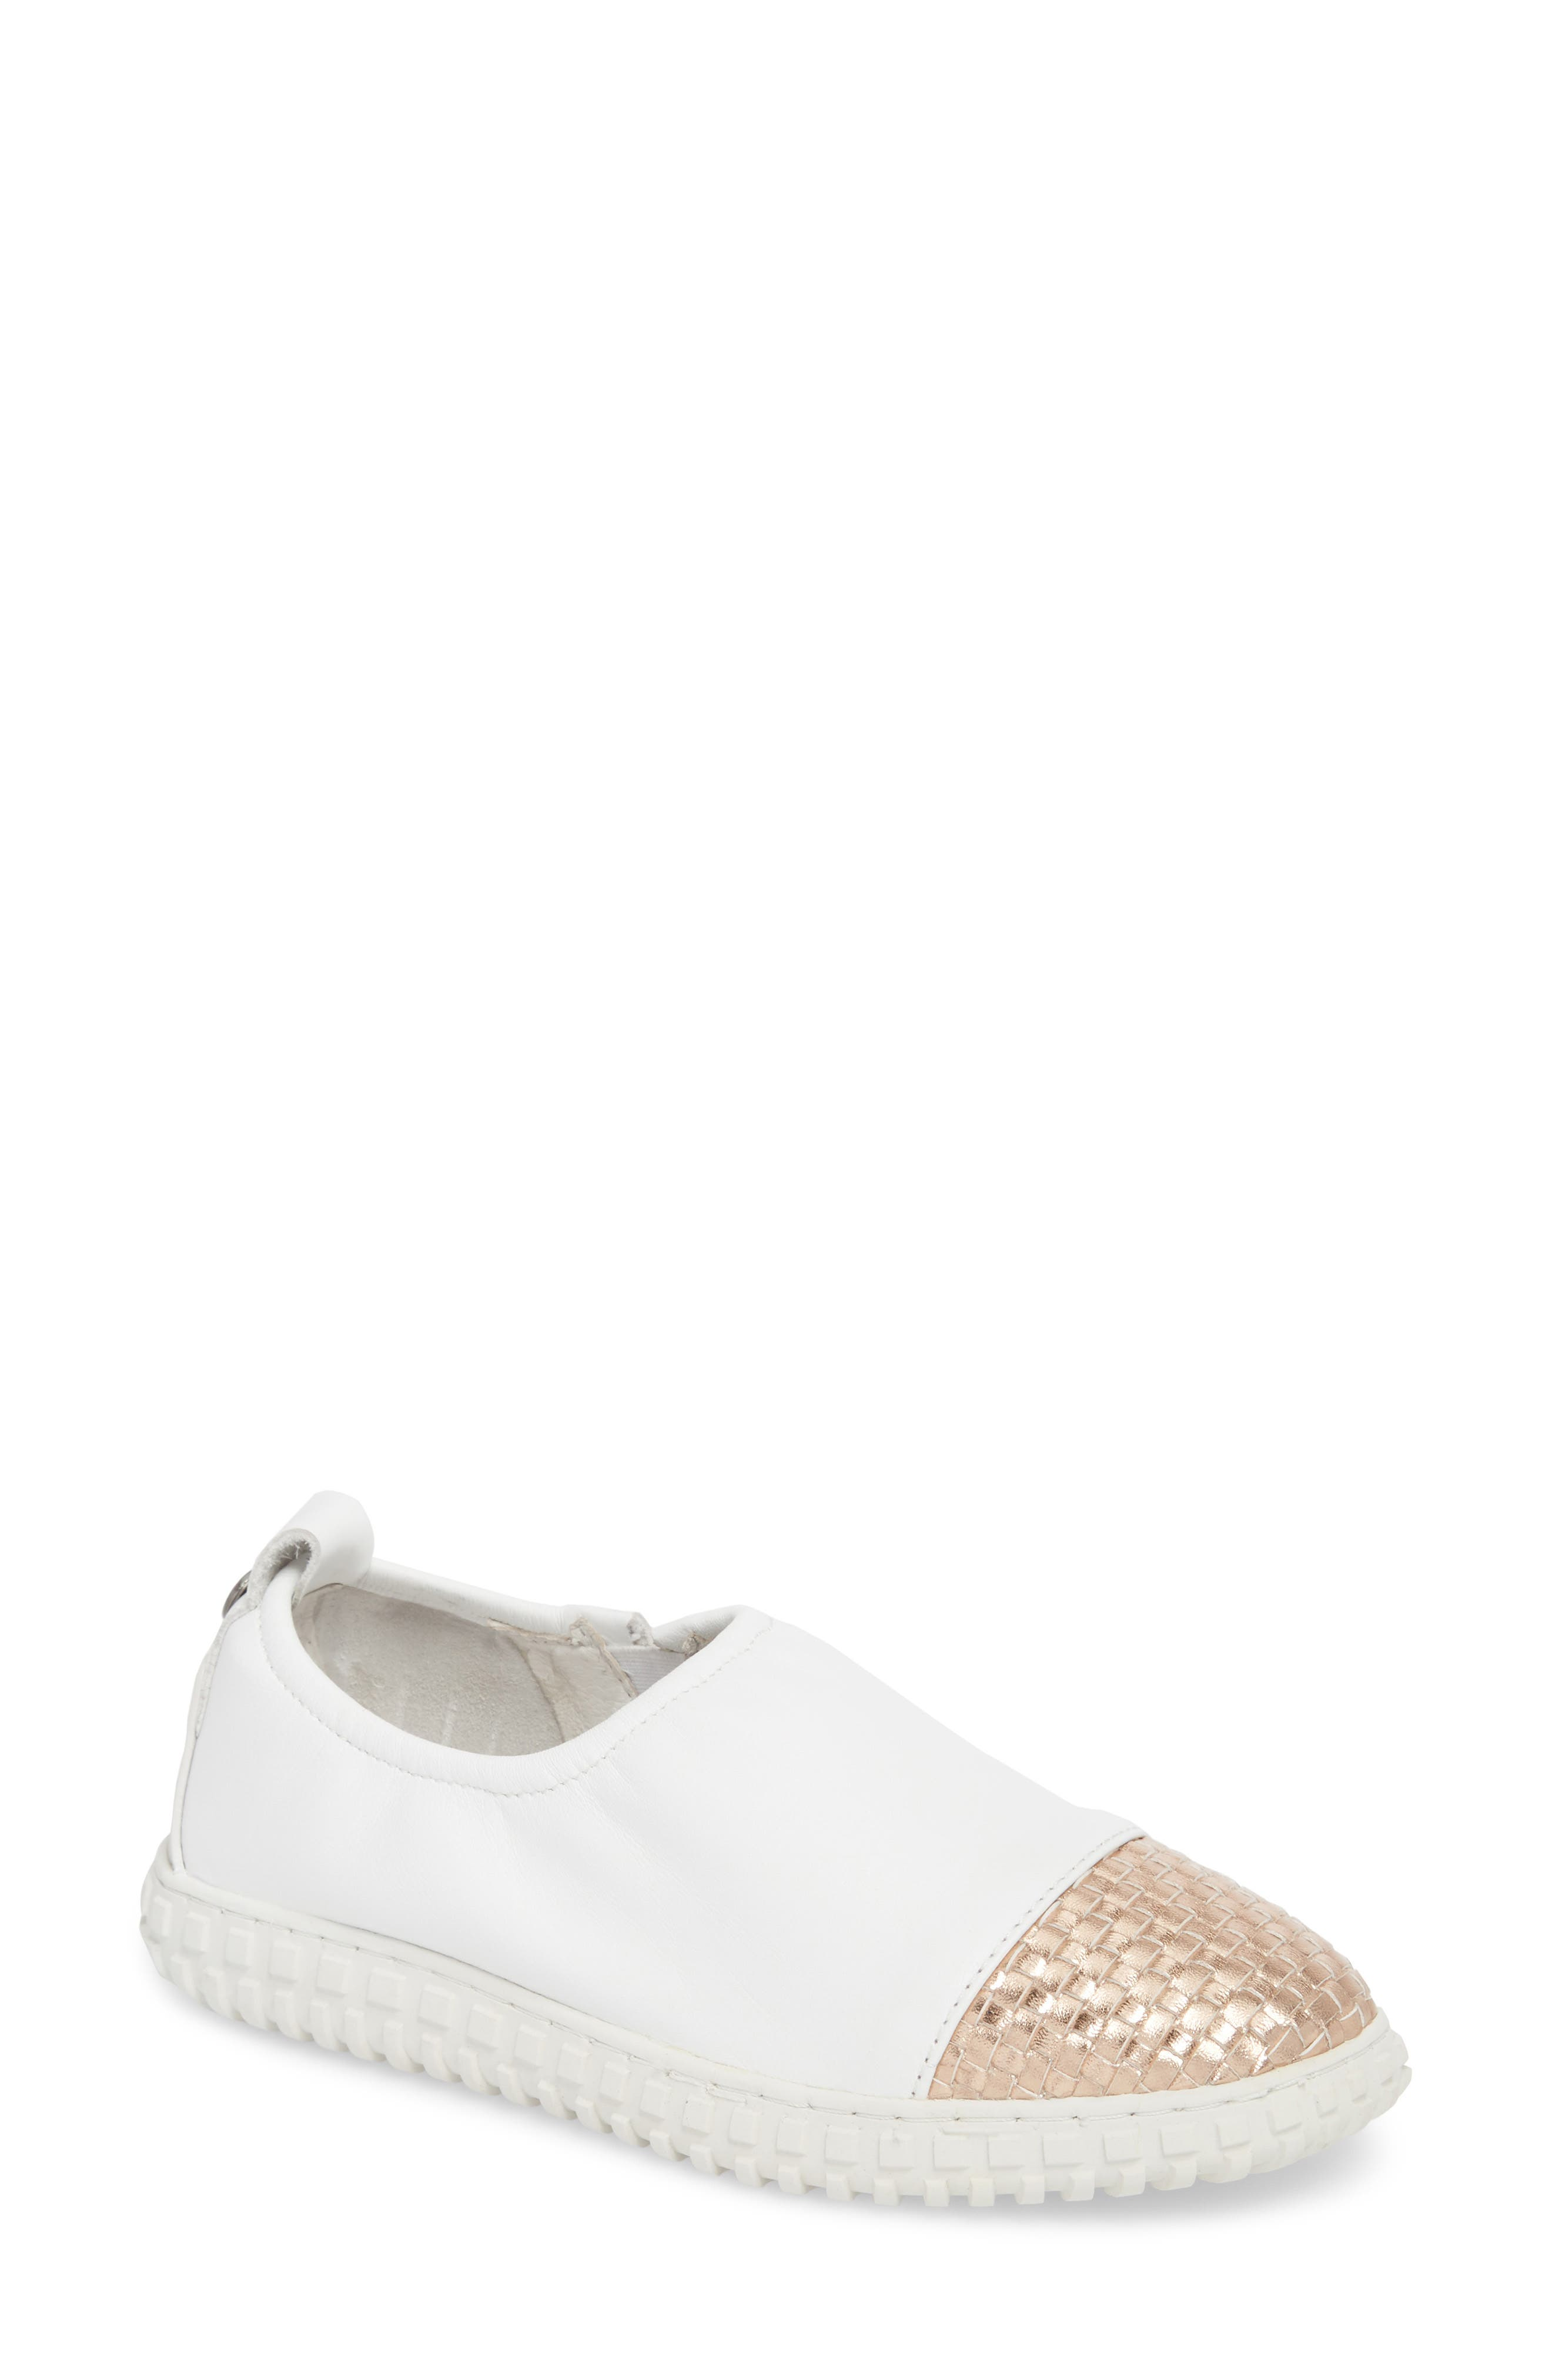 TW103 Slip-On Flat,                             Main thumbnail 1, color,                             WHITE/ ROSE GOLD WOVEN LEATHER